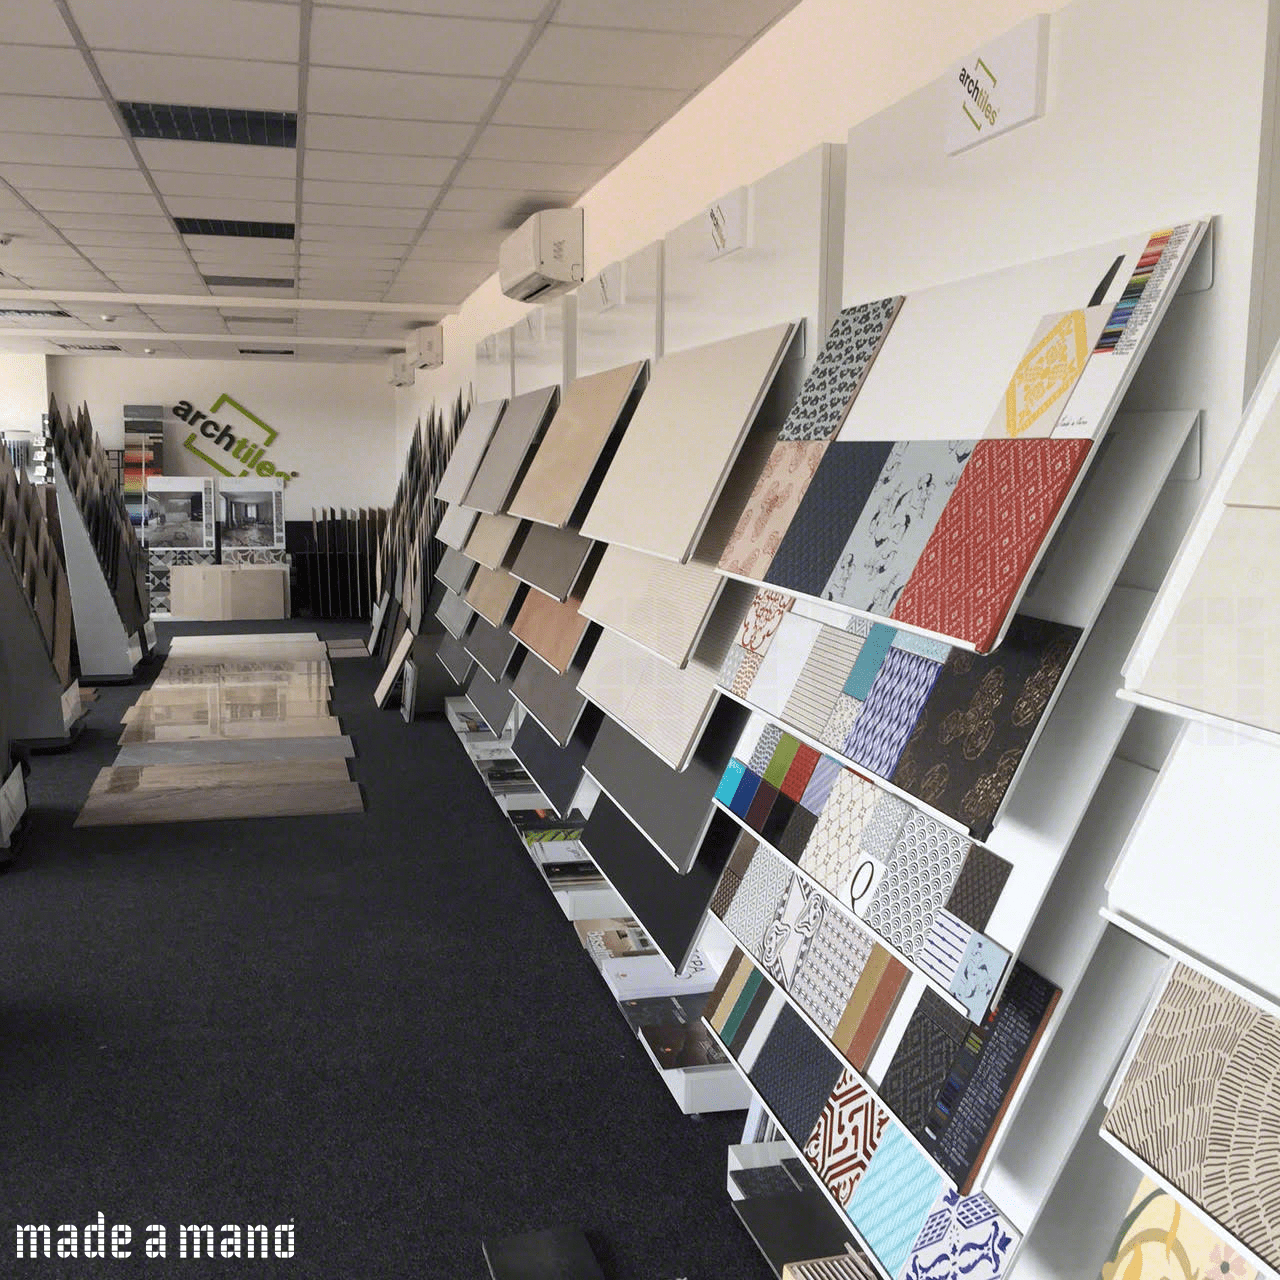 Made A Mano Piastrelle Madeamano International Tiles Day 2015 Http Bit Ly Madeamano